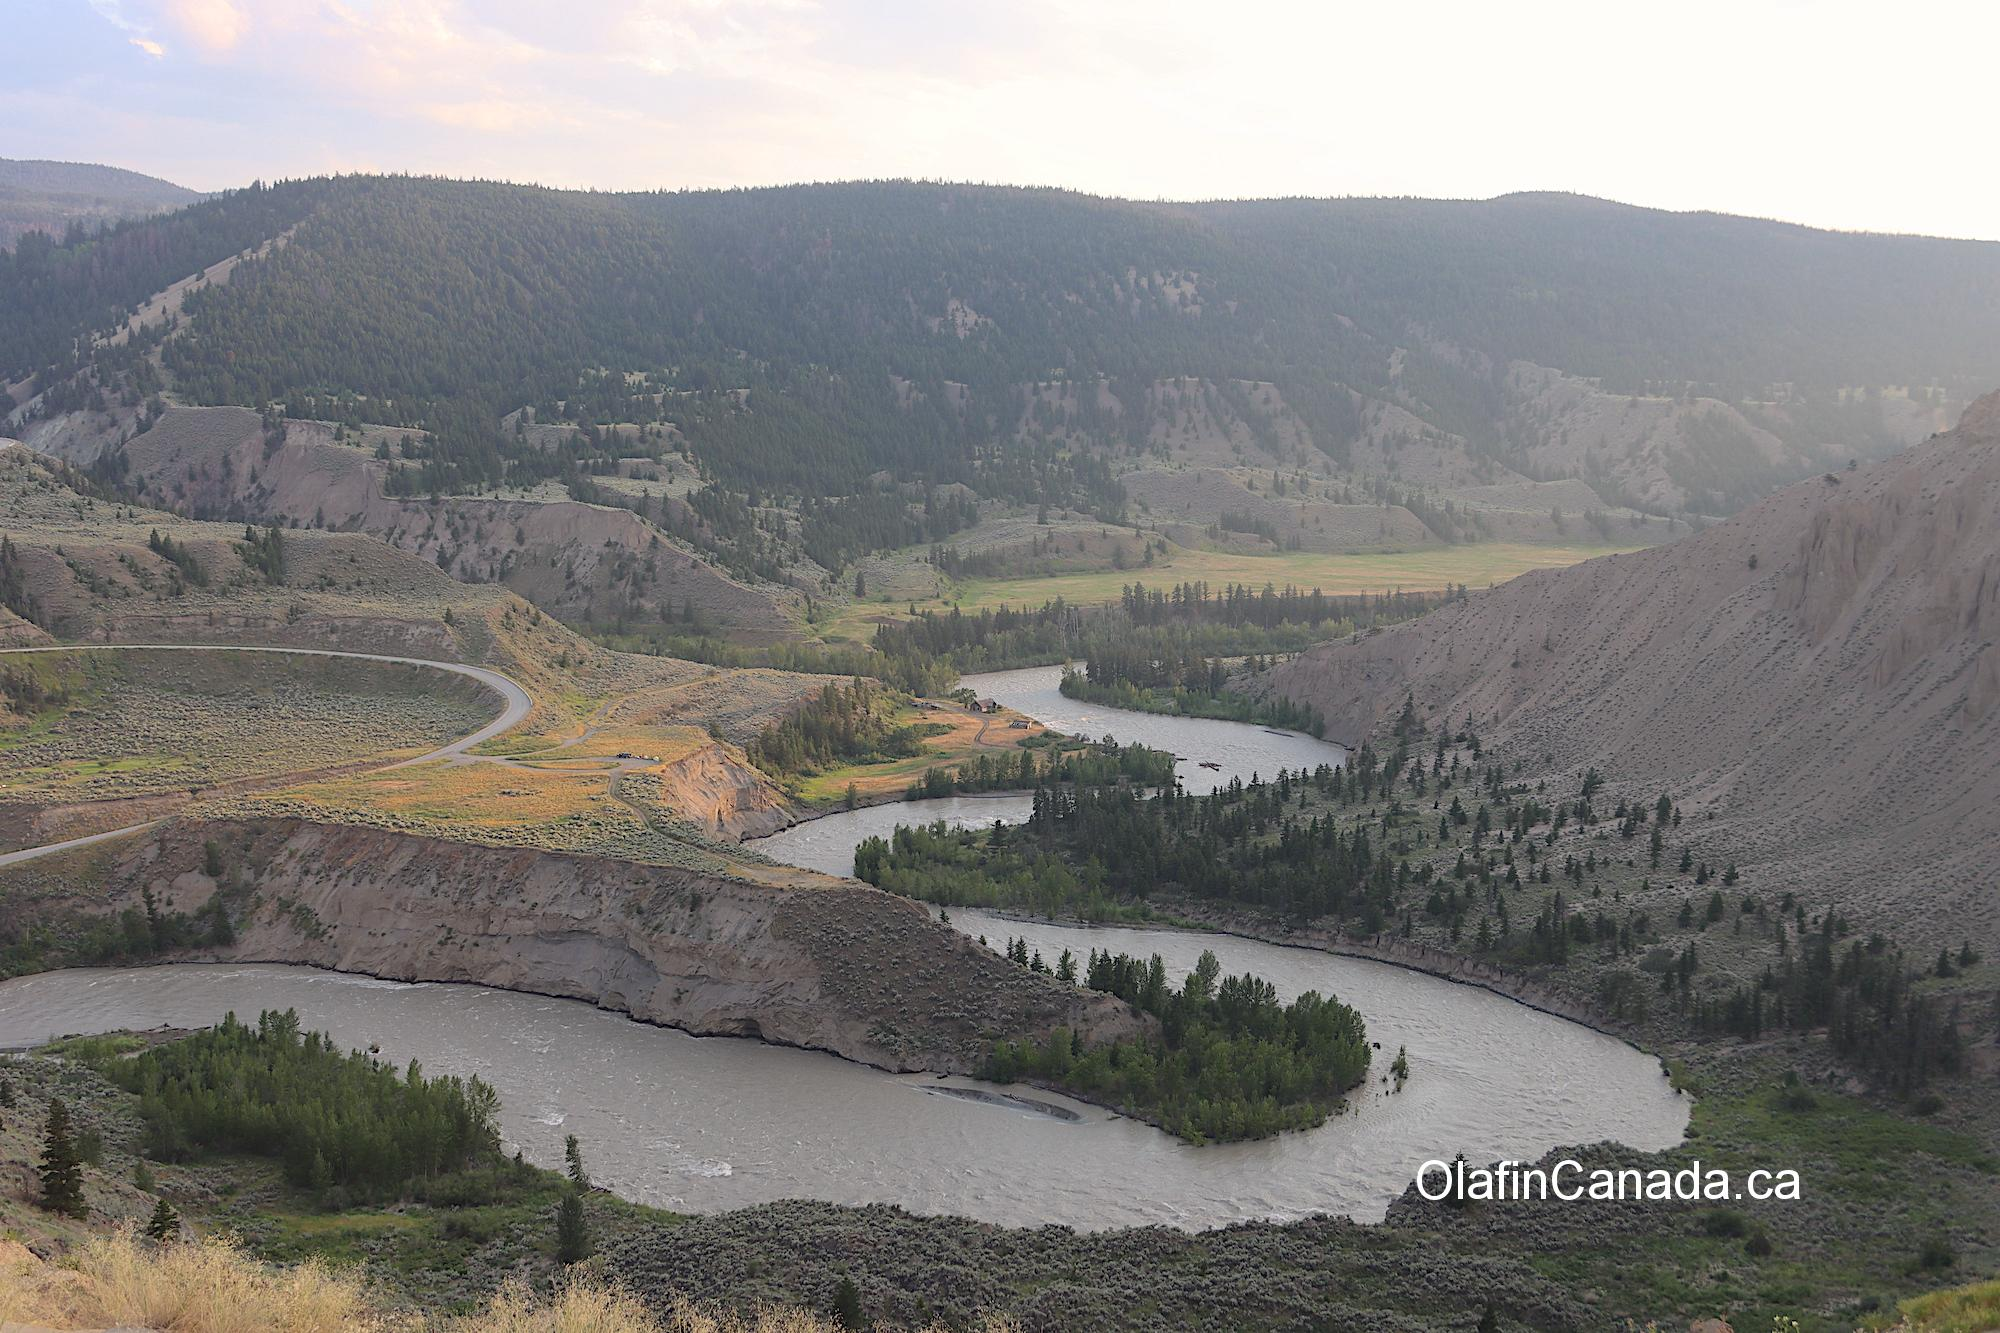 View of the Farwell Canyon with the Pothole Ranch in the middle #olafincanada #britishcolumbia #discoverbc #abandonedbc #chilcotin #farwellcanyon #potholeranch #homestead